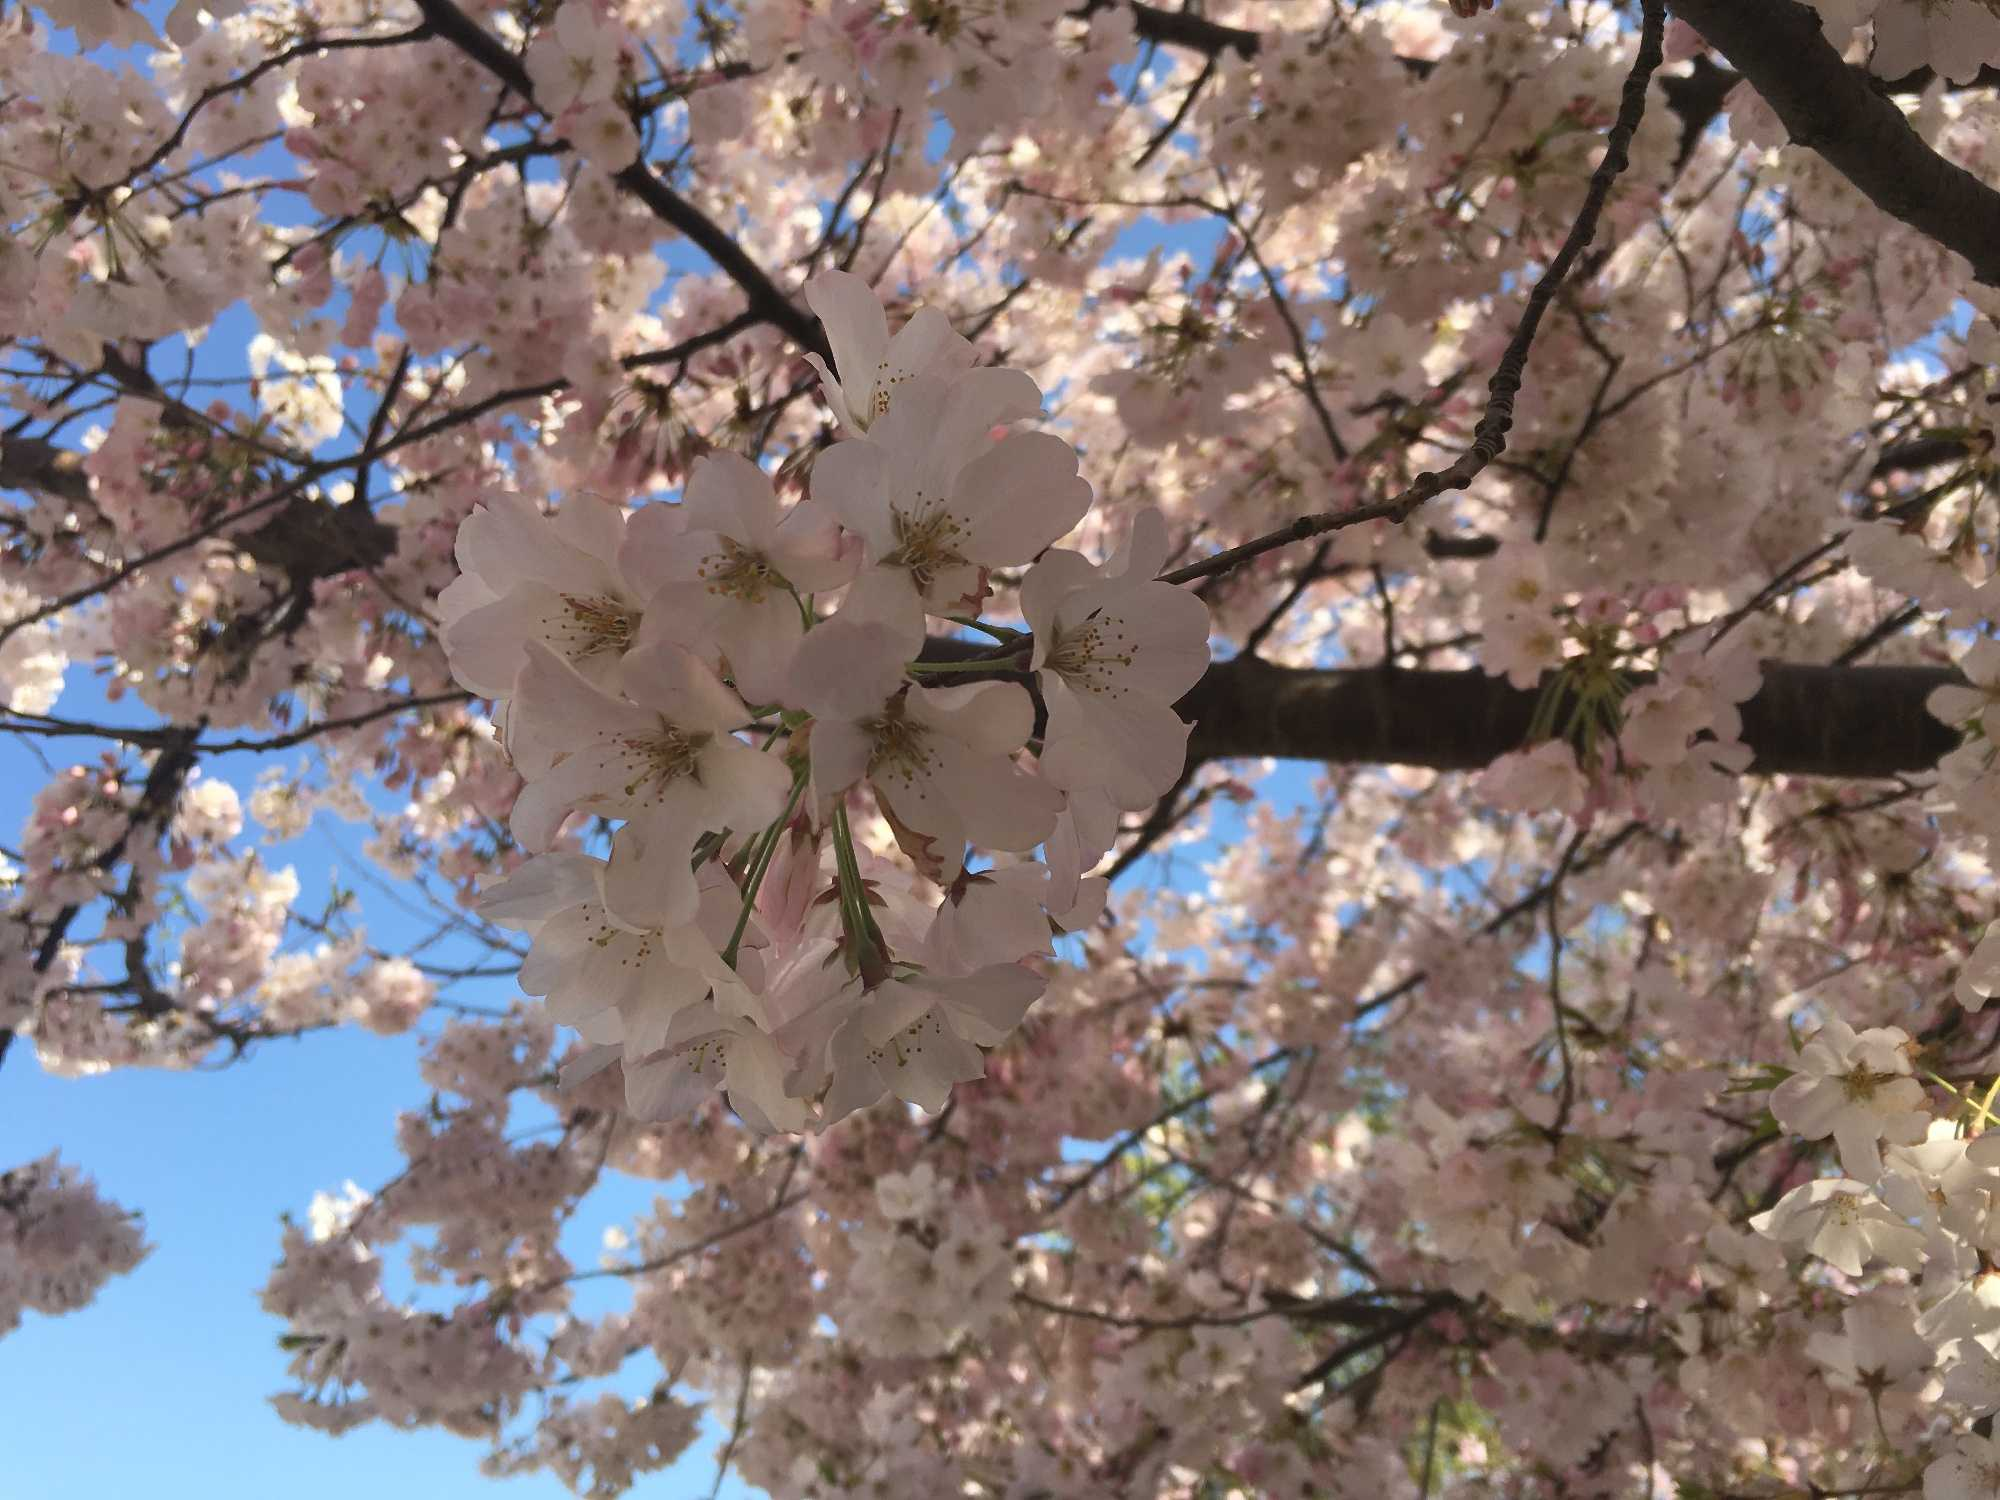 DC's Cherry Blossoms Expected To Hit Peak Bloom March 17-20